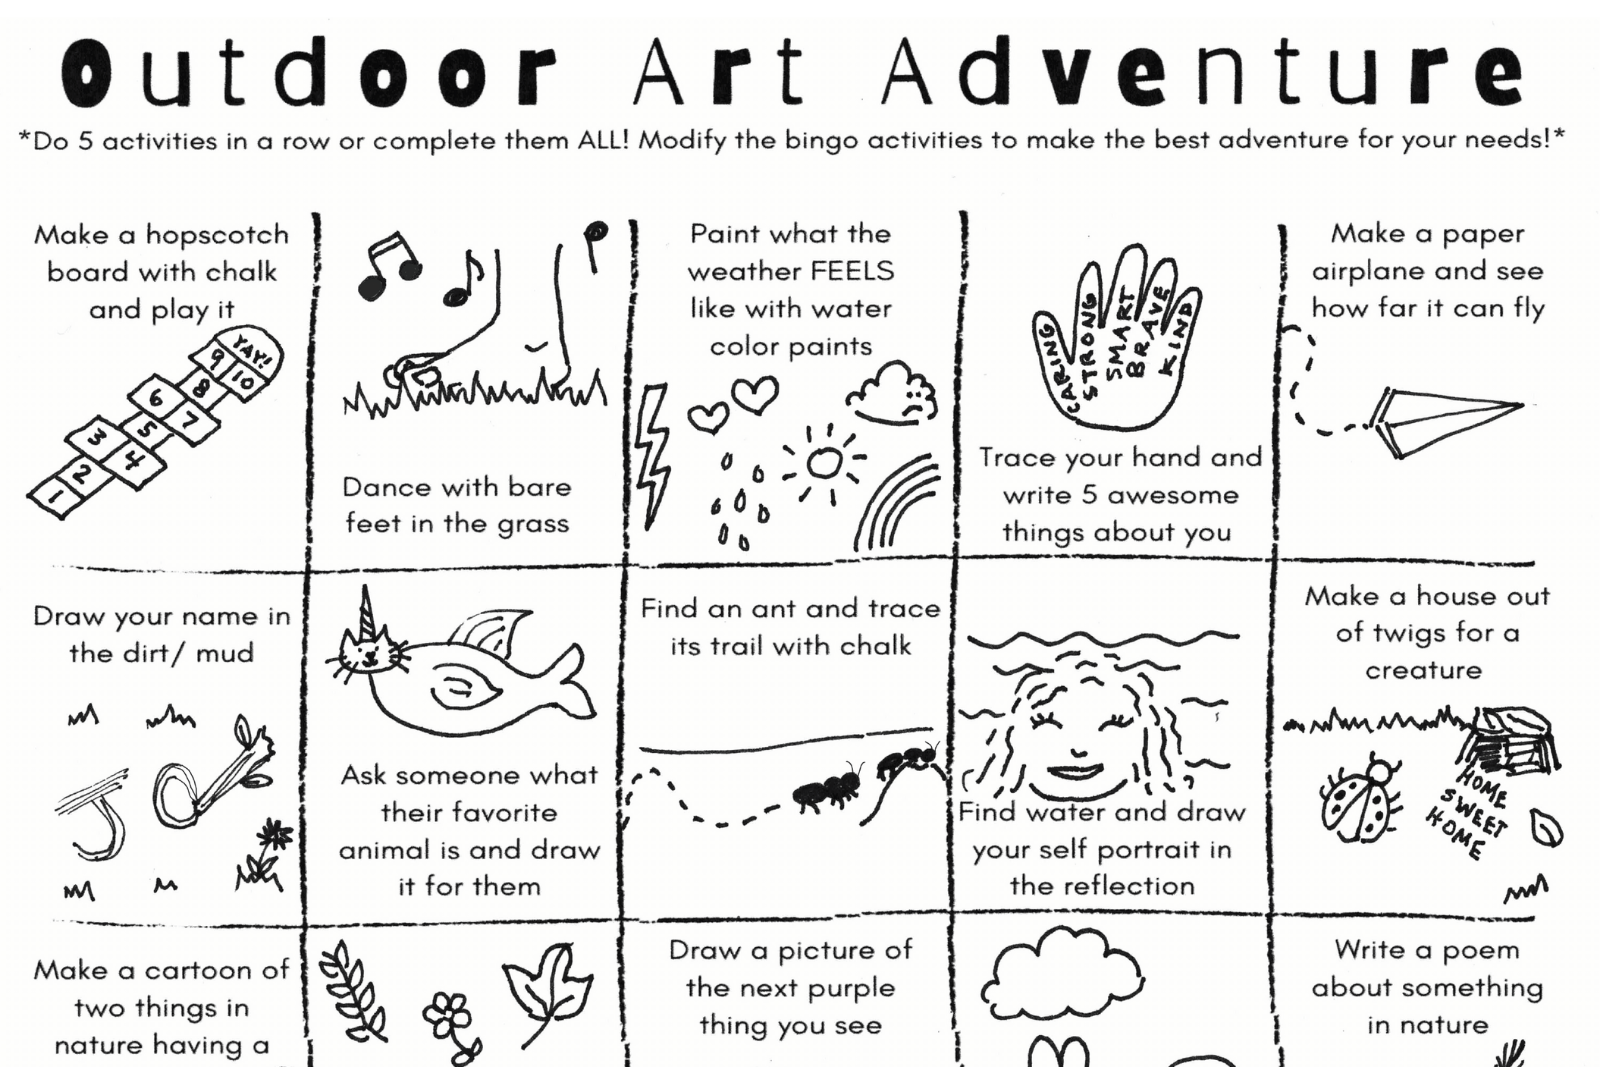 Outdoor art adventure bing card map inlcuding activities like make a paper airplane play hopscotch and draw a picture of your favorite animal